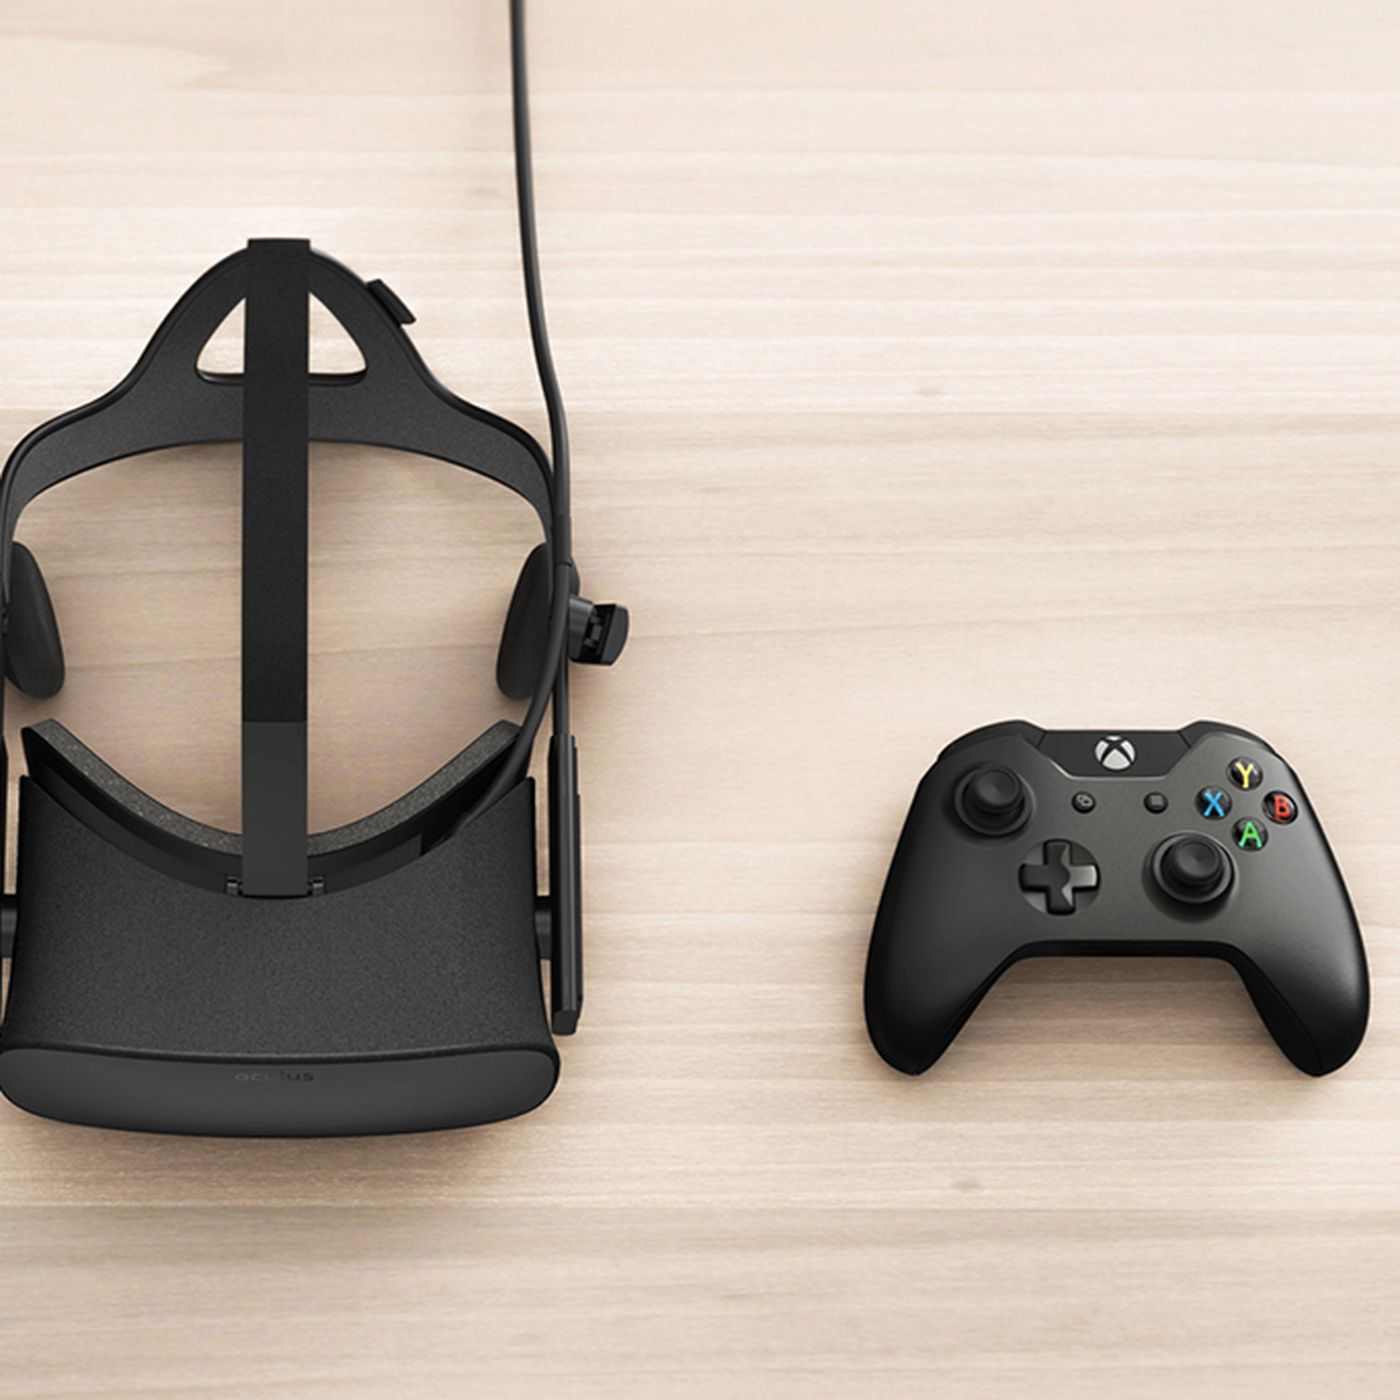 Xbox One games arrive on Oculus Rift with new streaming app - The Verge